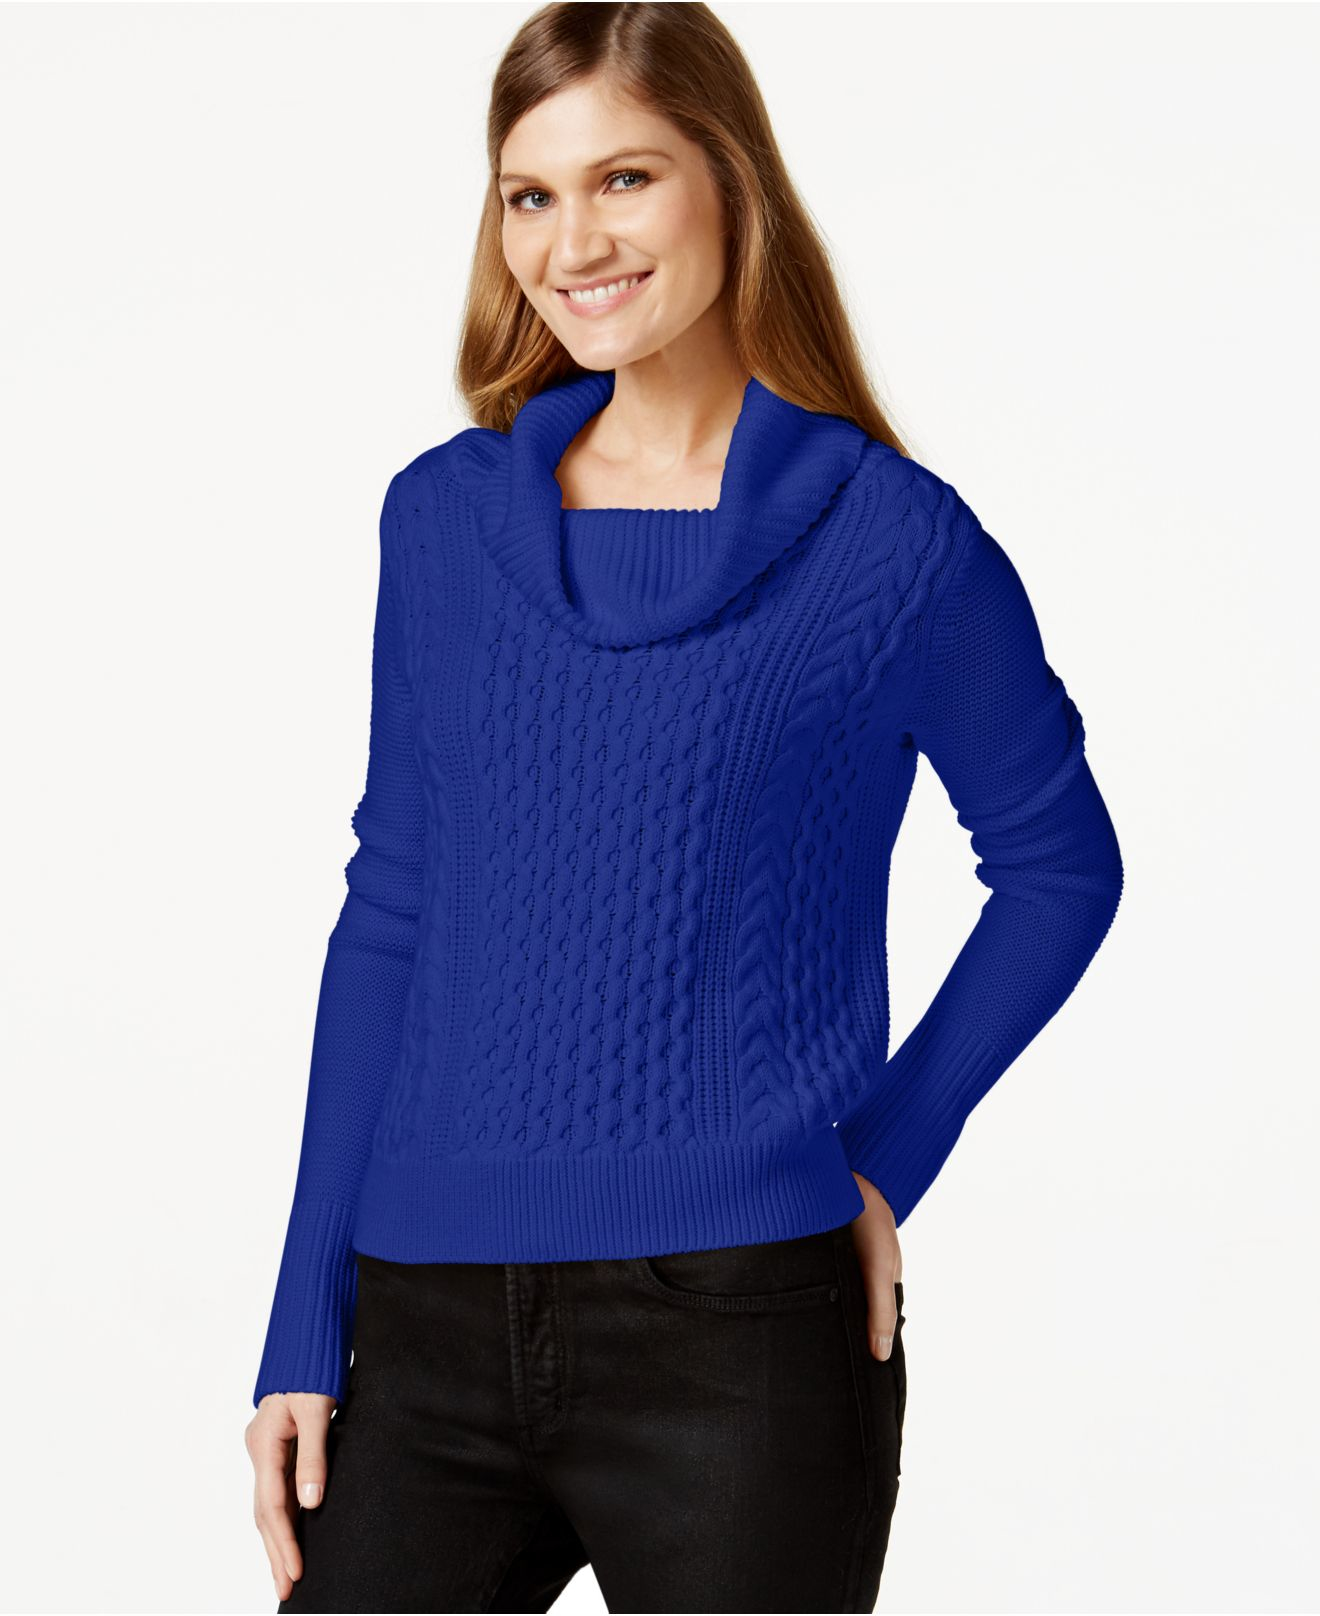 Cece by cynthia steffe Cowl-neck Cable-knit Sweater in Blue | Lyst